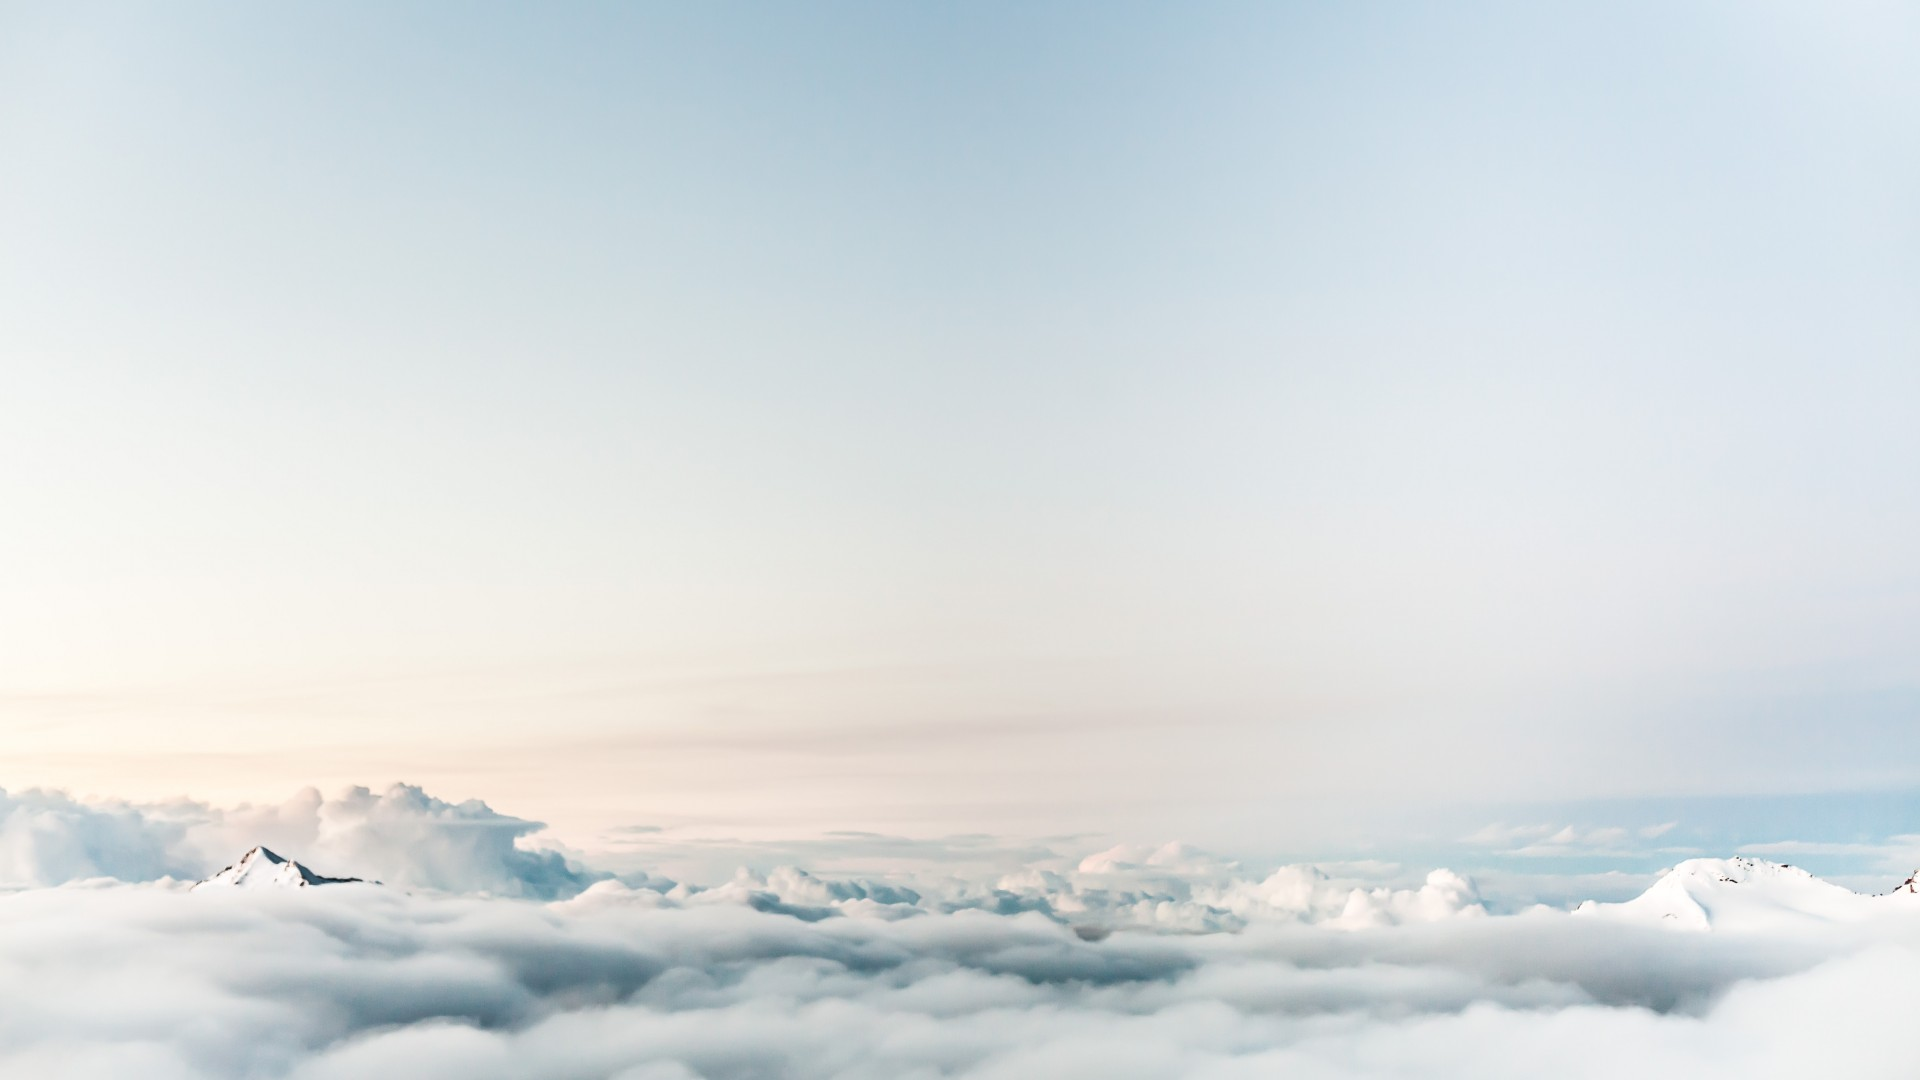 Wallpaper Clouds Blue Sky Hd 5k Nature 3492: Wallpaper Alps, 5k, 4k Wallpaper, 8k, Peak, Clouds, Sky